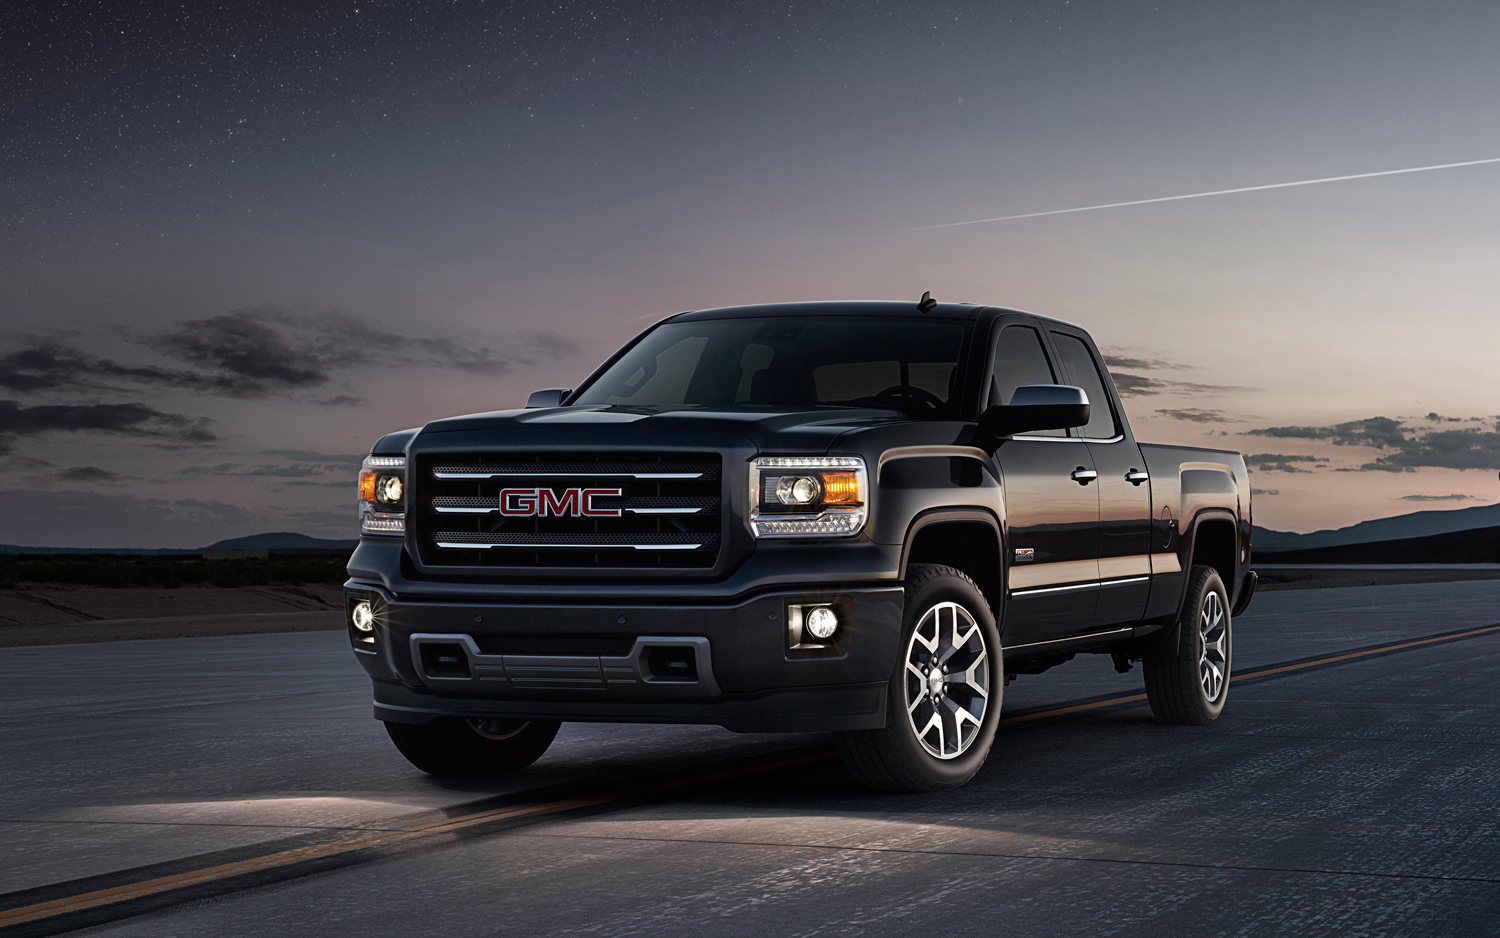 KJO27   Gmc HD Wallpapers 27 Computer Backgrounds 1500x938